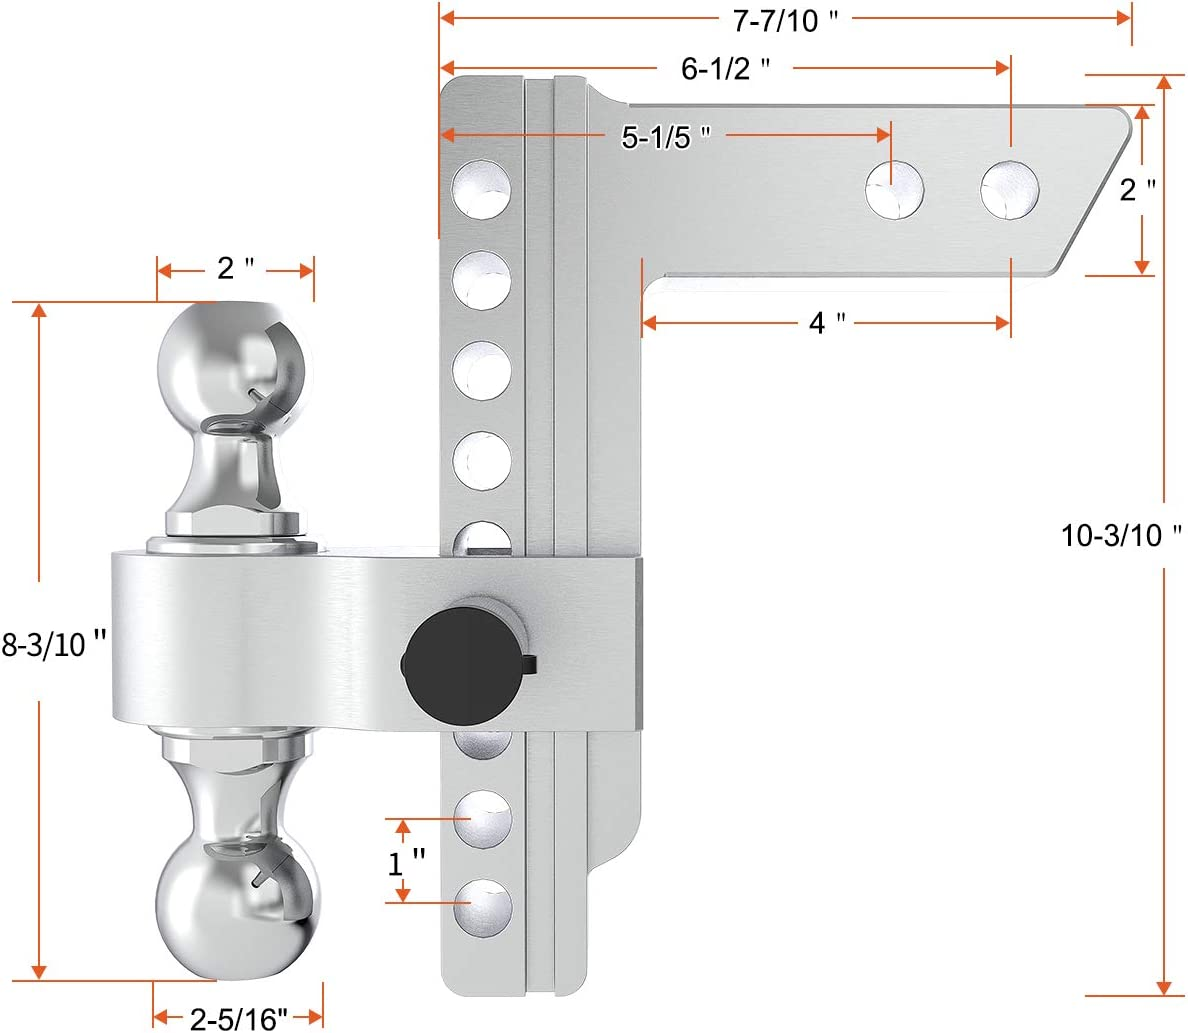 Silver Fits 2-Inch Receiver 6-Inch Drop//Rise YITAMOTOR Adjustable Trailer Hitch Ball Mount w//Forged Aluminum Shank 2 /& 2-5//16 Combo Tow Balls with Double Pins and Locks